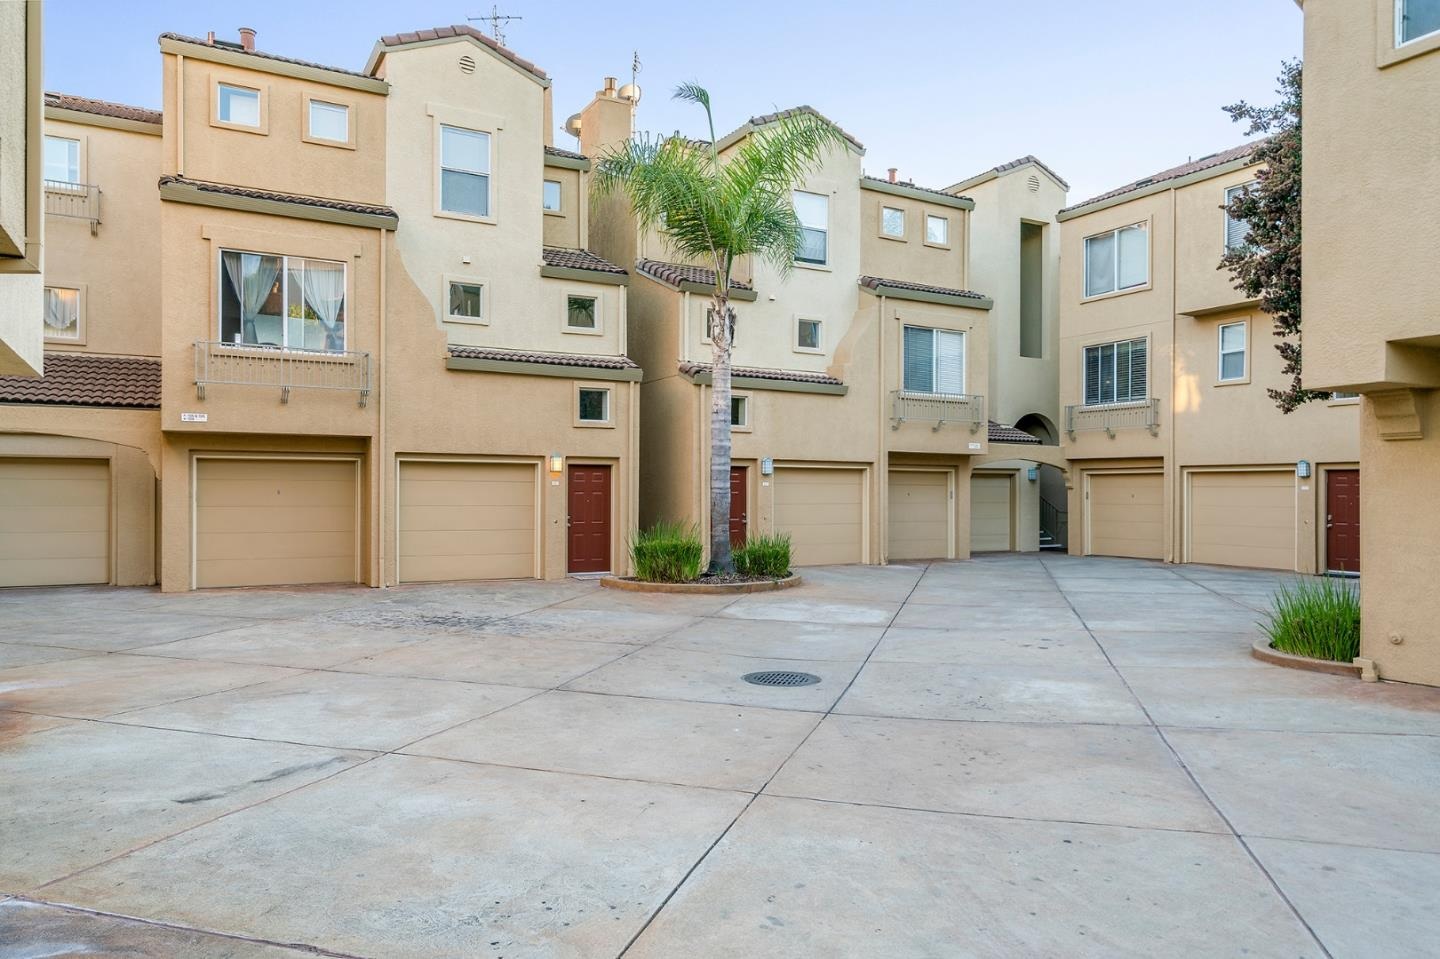 Detail Gallery Image 1 of 1 For 1690 Civic Center Dr #206, Santa Clara, CA, 95050 - 2 Beds | 2 Baths